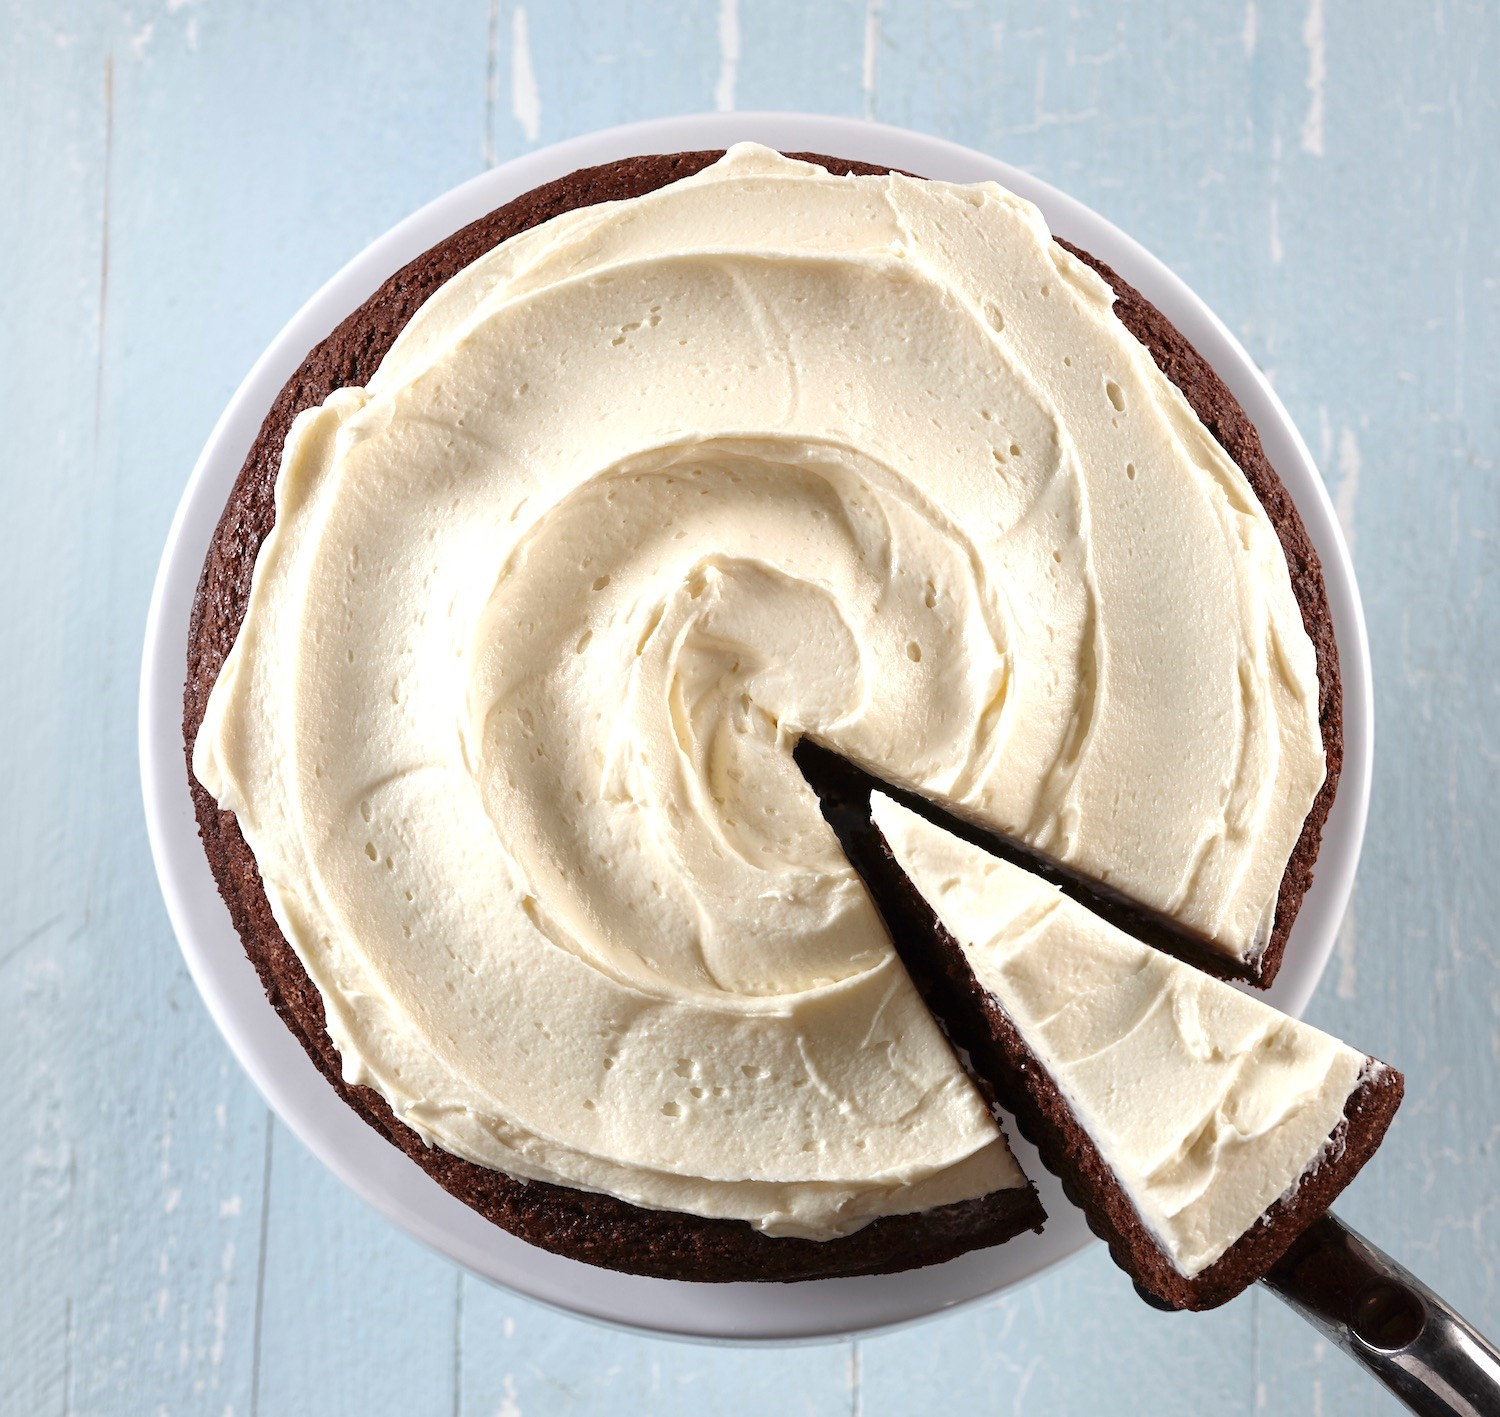 Gluten-Free Ice Cream Snack Cake with Vanilla Ice Cream Frosting